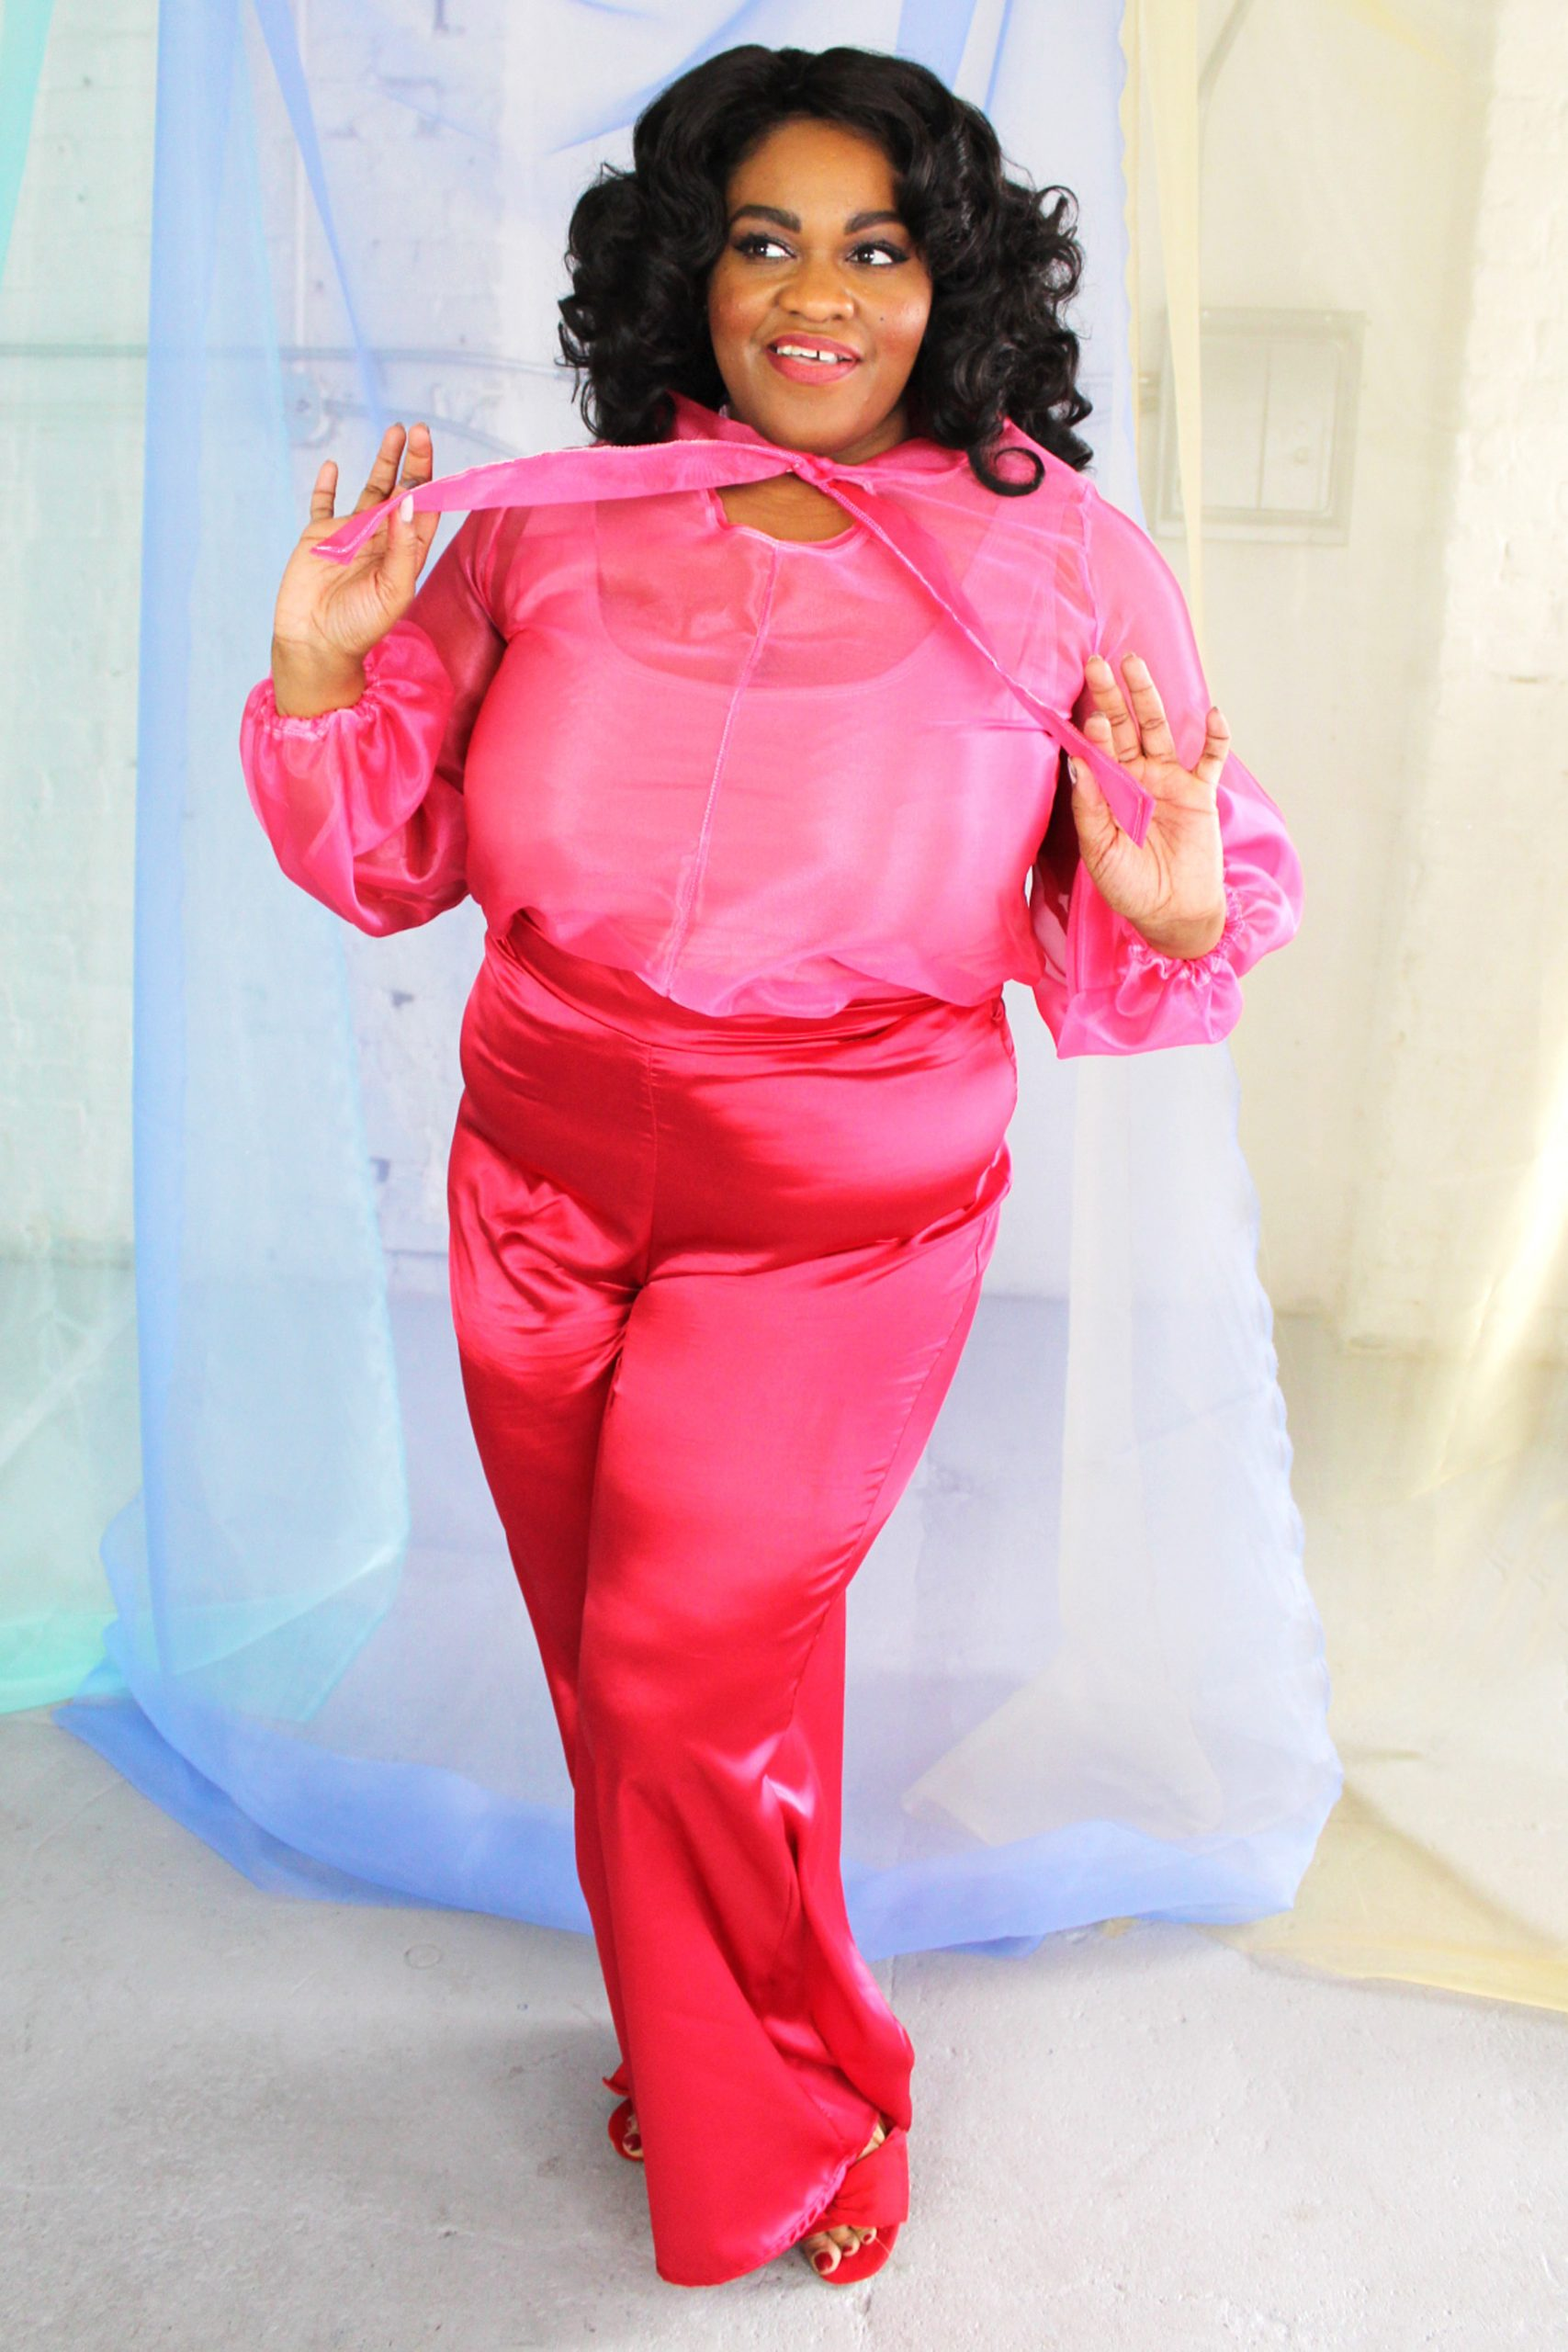 Plus size black model with curly hair wearing pink organza blouse and red satin wide leg pants, ethically handmade in NYC